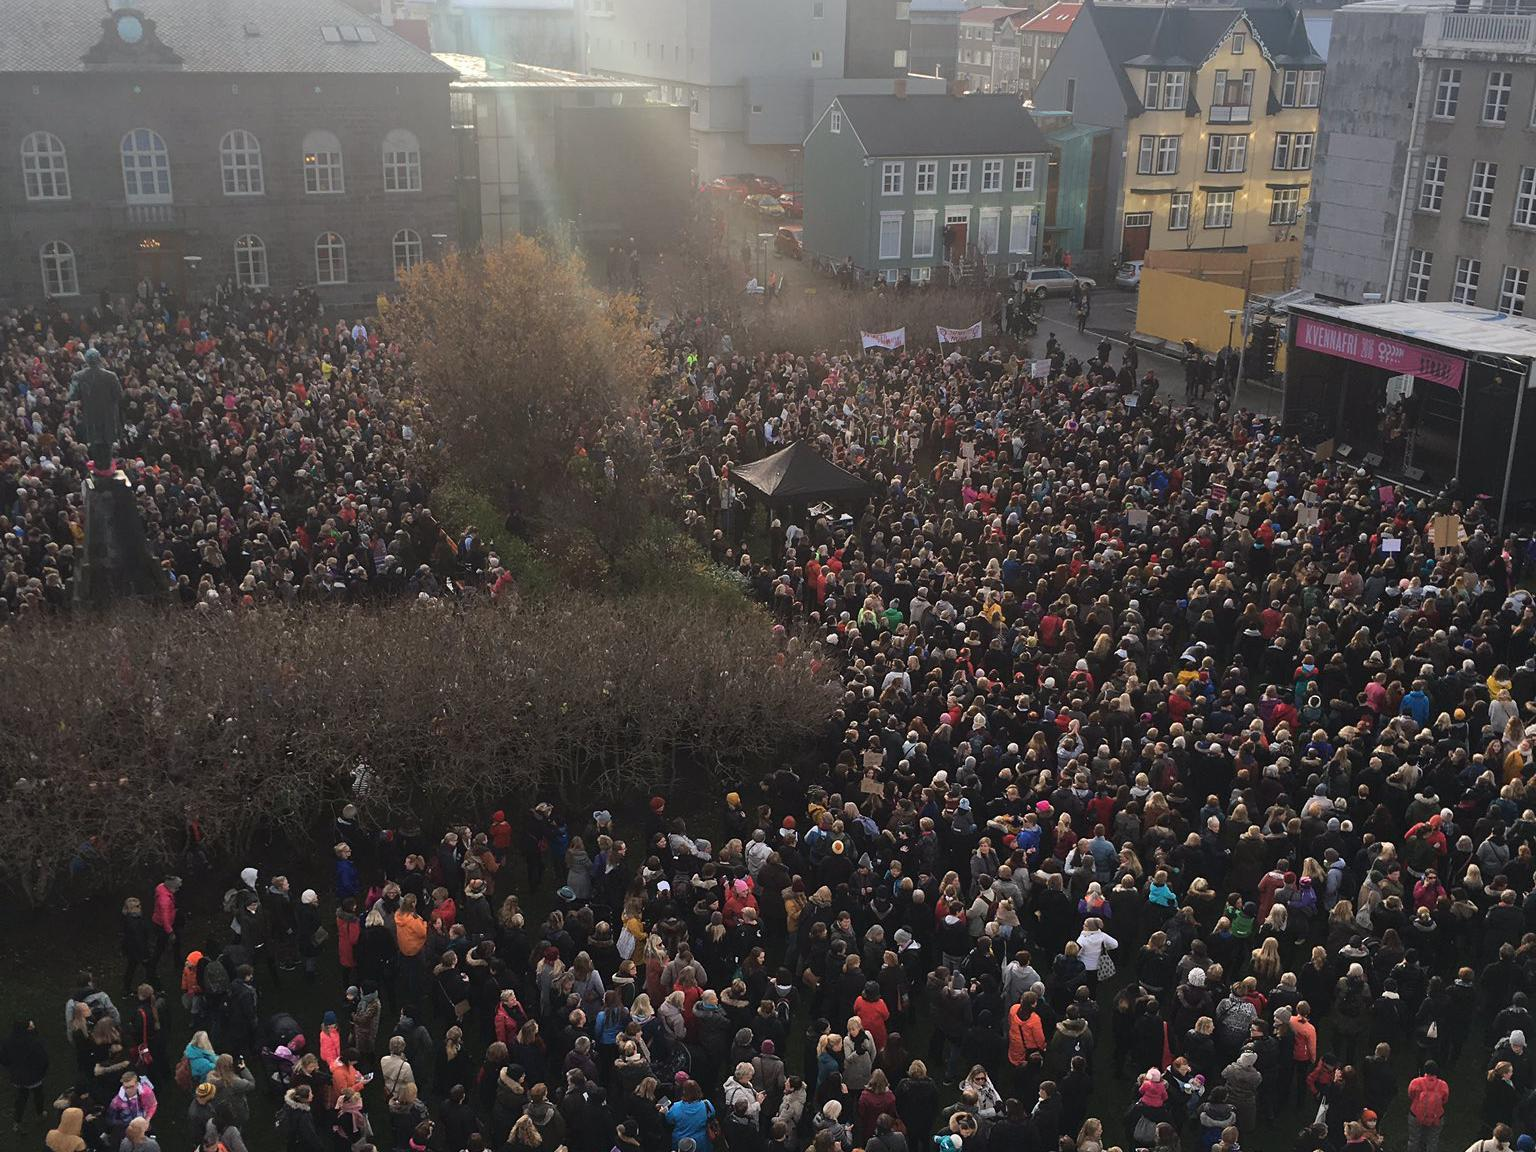 Iceland's women leave work at 2.38pm to protest gender pay gap